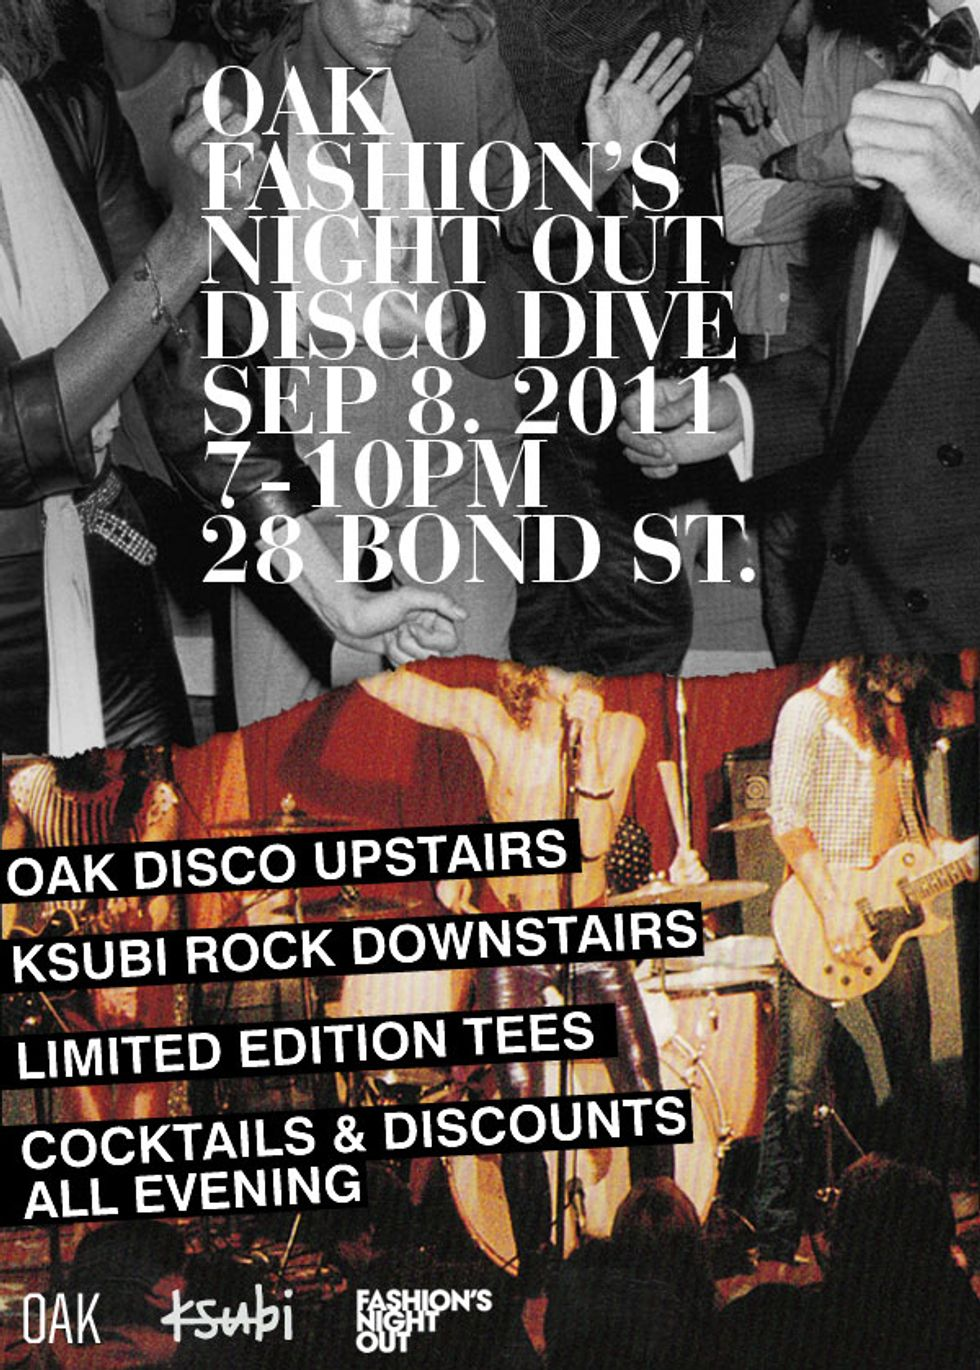 OAK's Disco Moment for FNO